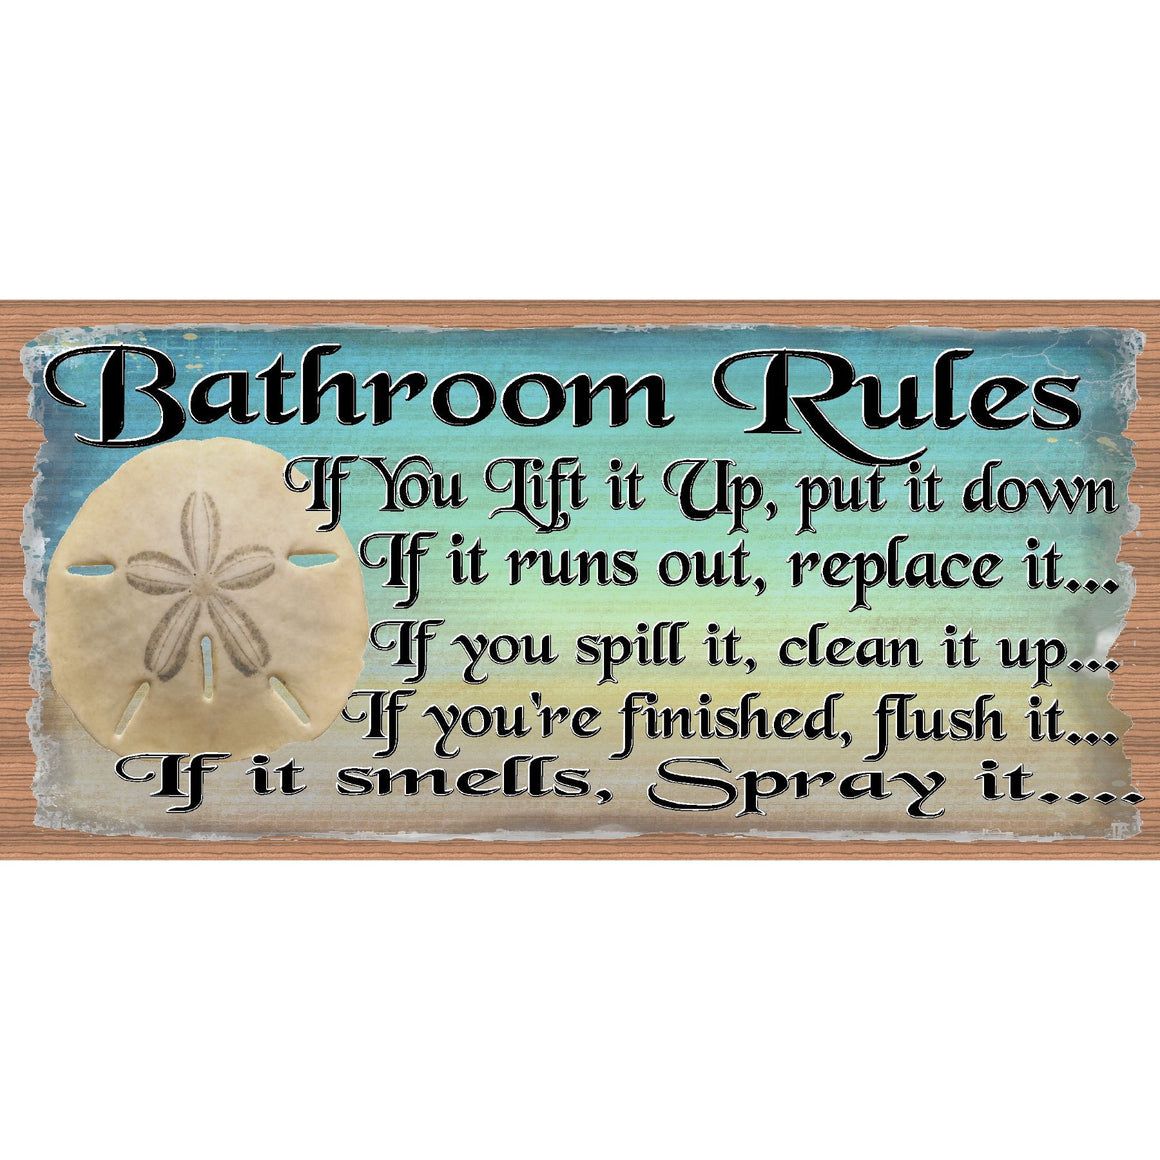 Bathroom Wood Signs -Bathroom Rules -GS 2274- Tropical Bathroom Plaque